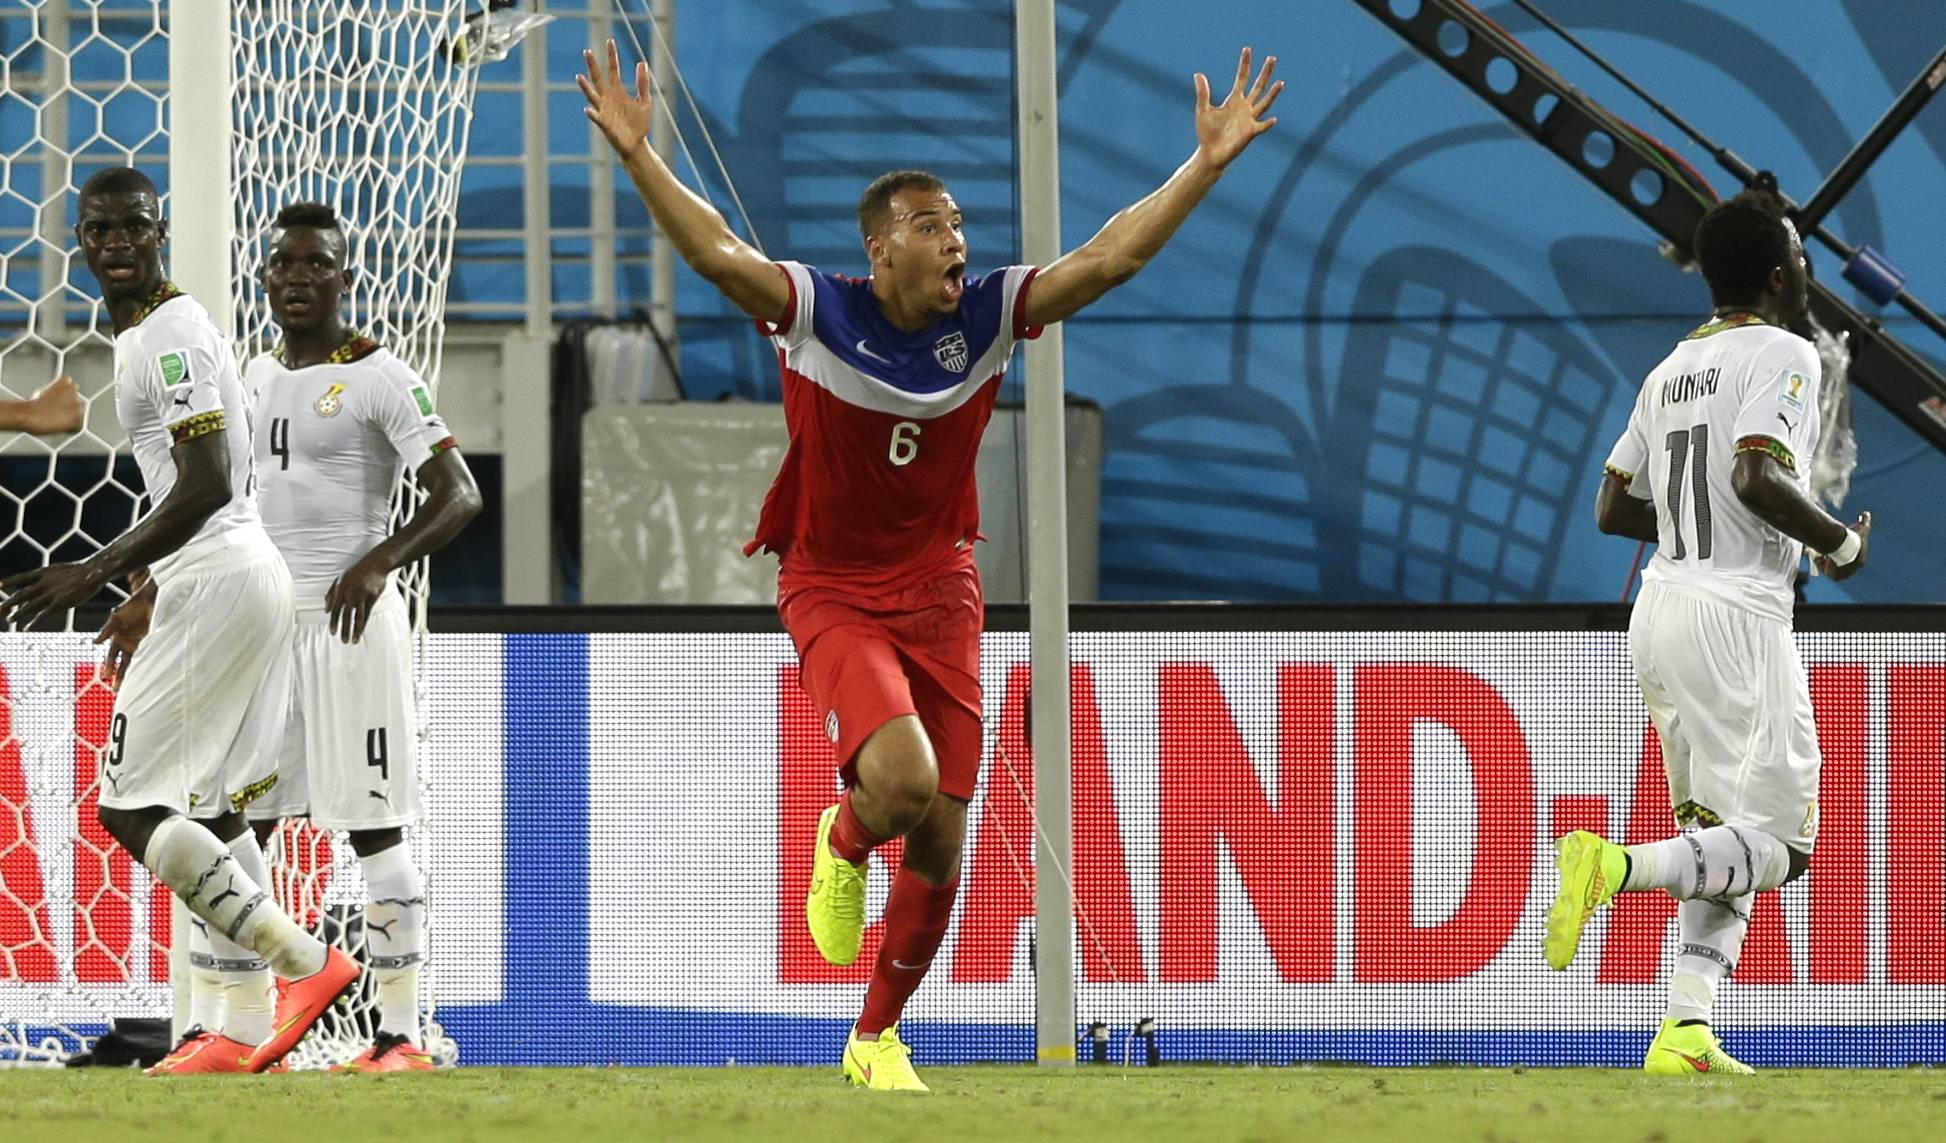 United States' John Brooks, center, celebrates after scoring his side's second goal during the group G World Cup soccer match between Ghana and the United States at the Arena das Dunas in Natal, Brazil, Monday.